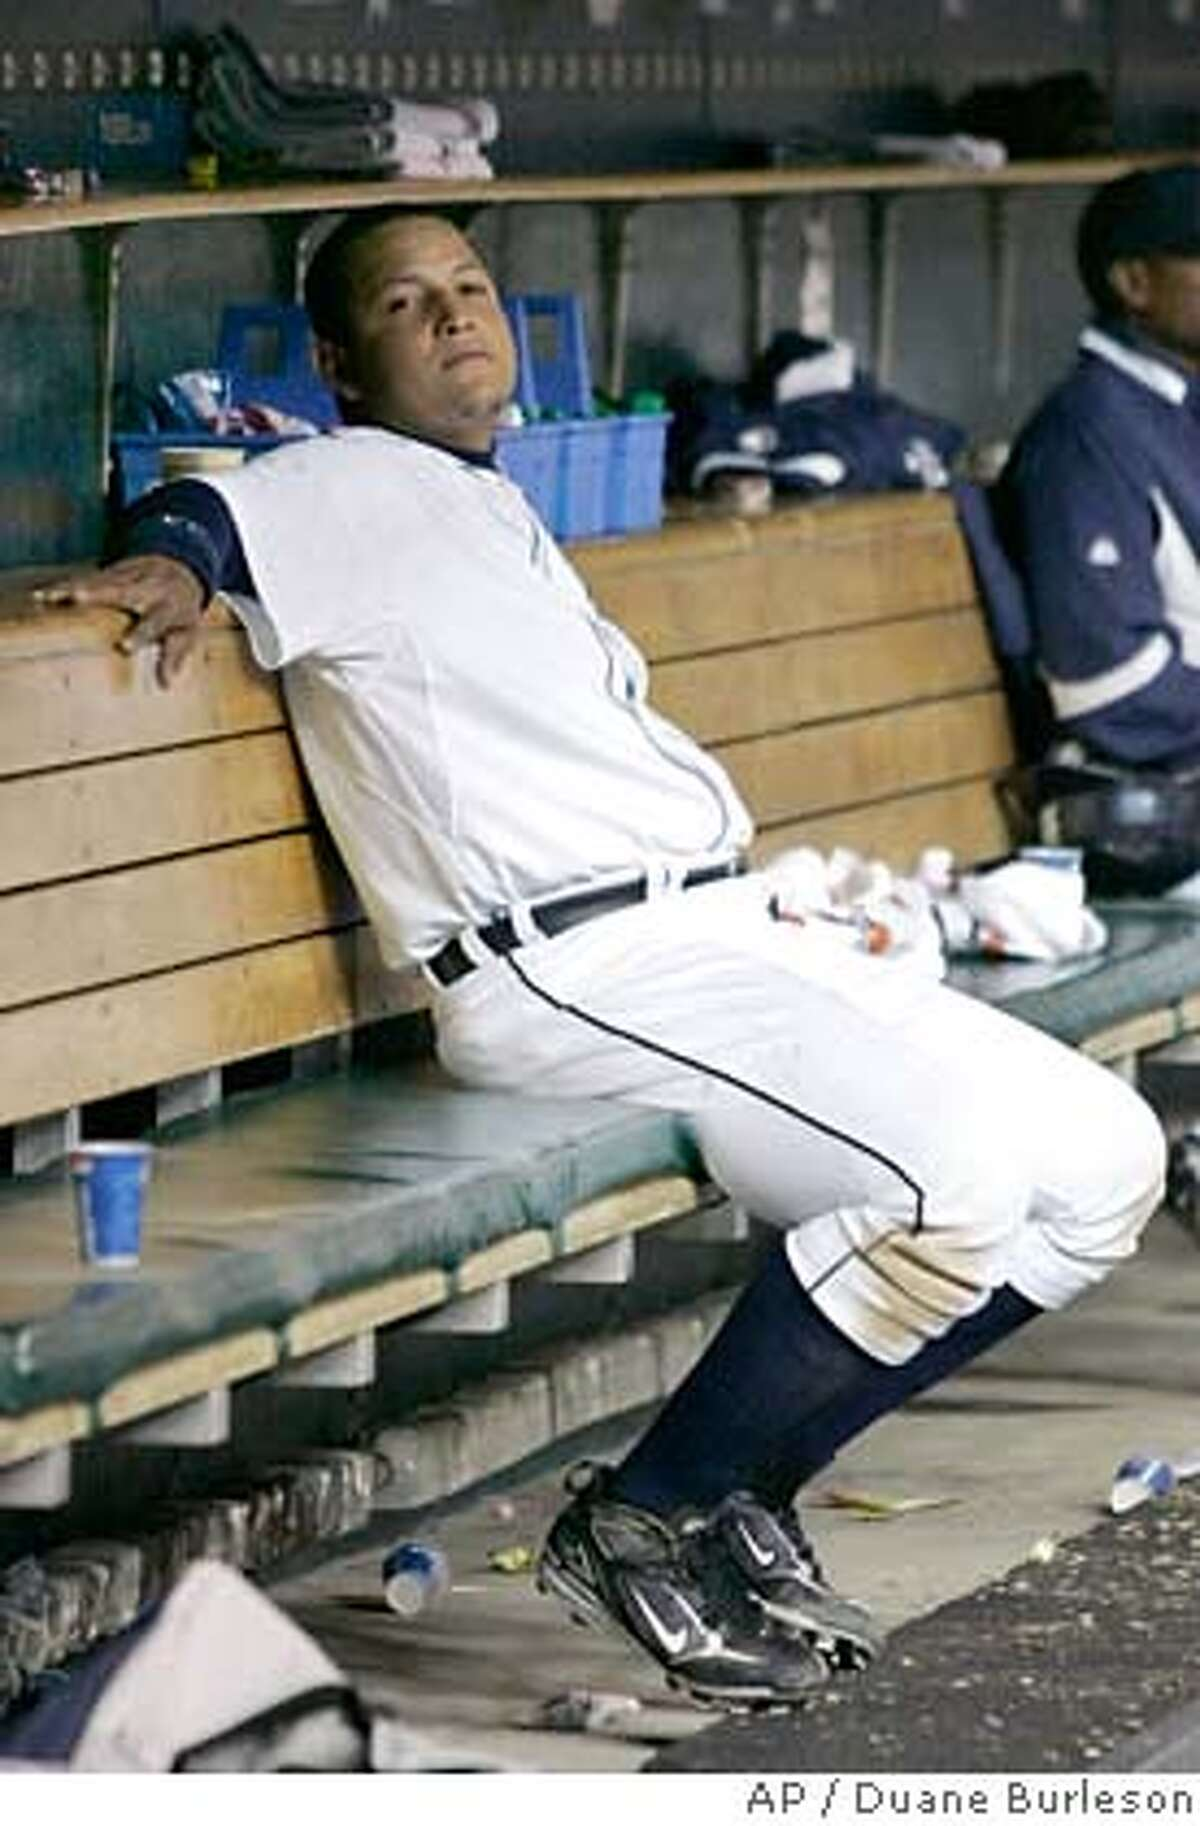 ###Live Caption:Detroit Tigers' Miguel Cabrera sits on the bench in the ninth inning of Detroit's 13-2 loss to the Chicago White Sox in a baseball game Sunday, April 6, 2008, in Detroit. (AP Photo/Duane Burleson)###Caption History:Detroit Tigers' Miguel Cabrera sits on the bench in the ninth inning of Detroit's 13-2 loss to the Chicago White Sox in a baseball game Sunday, April 6, 2008, in Detroit. (AP Photo/Duane Burleson)###Notes:Miguel Cabrera###Special Instructions:EFE OUT